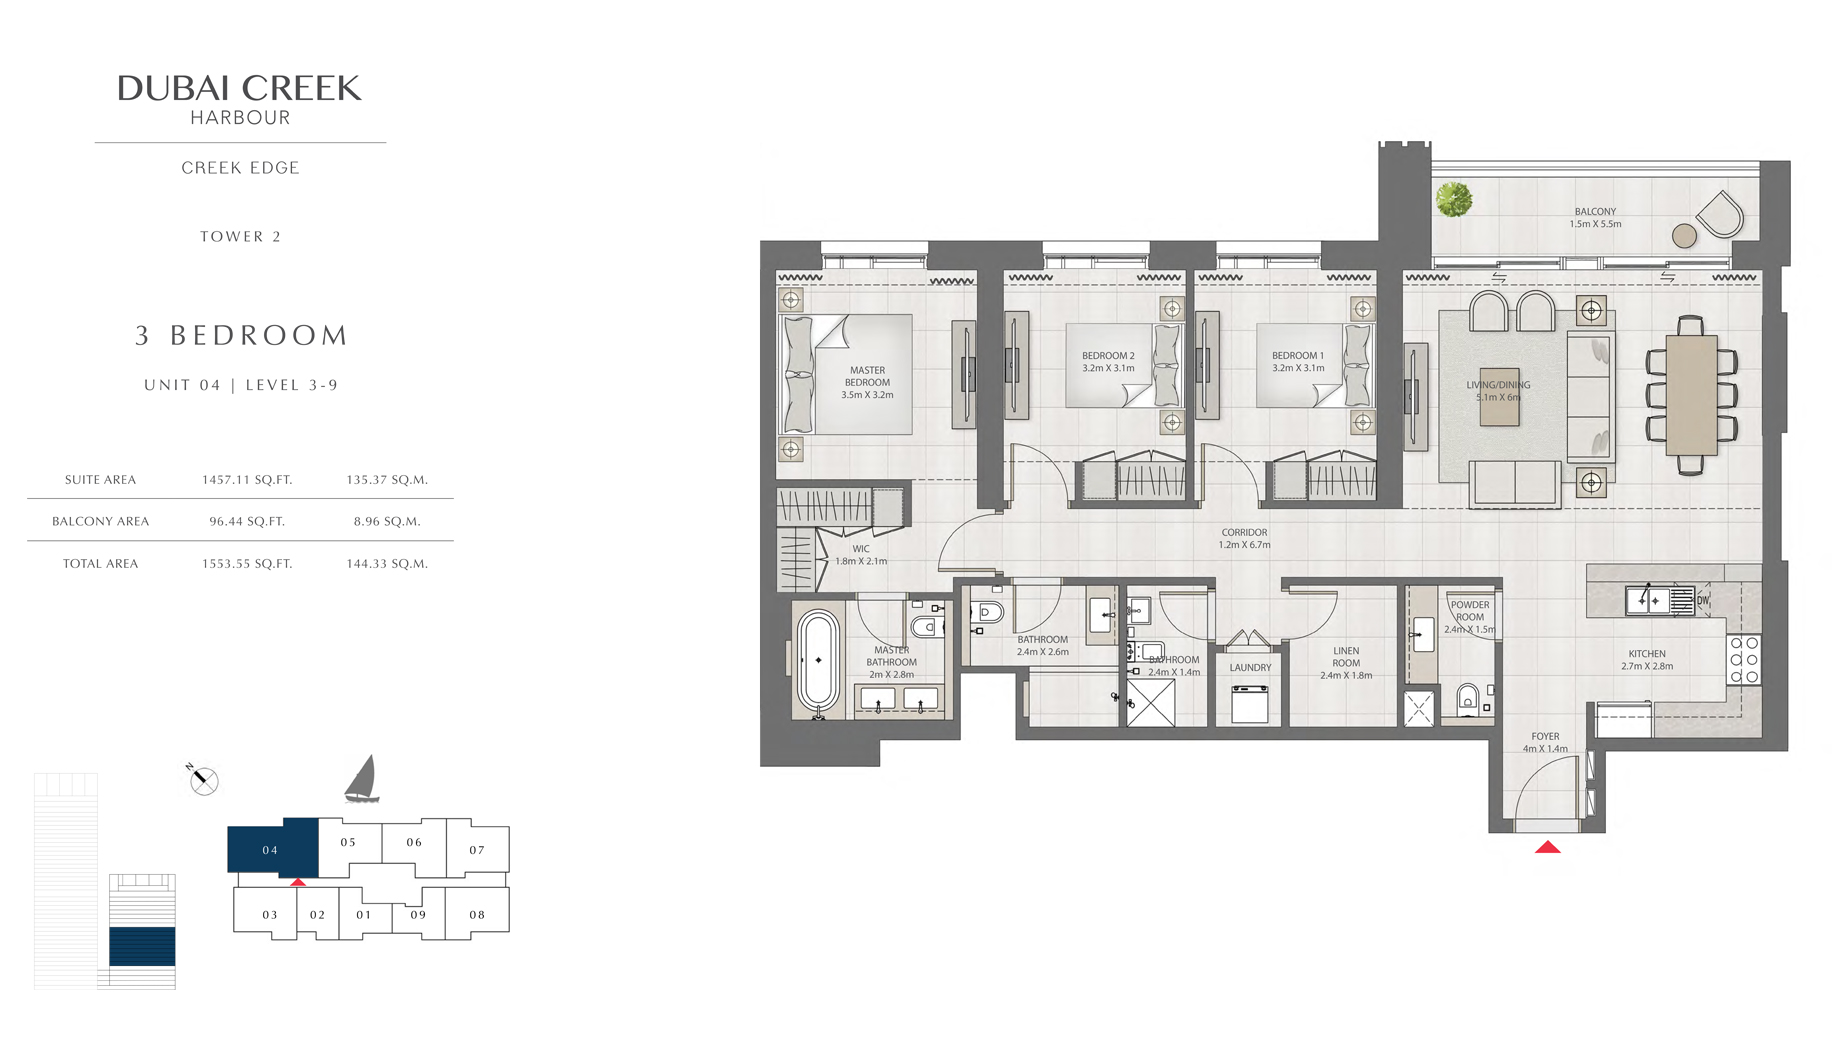 3 Bedroom Tower 2 Unit 04 Level 3-9 Size 1553 sq.ft